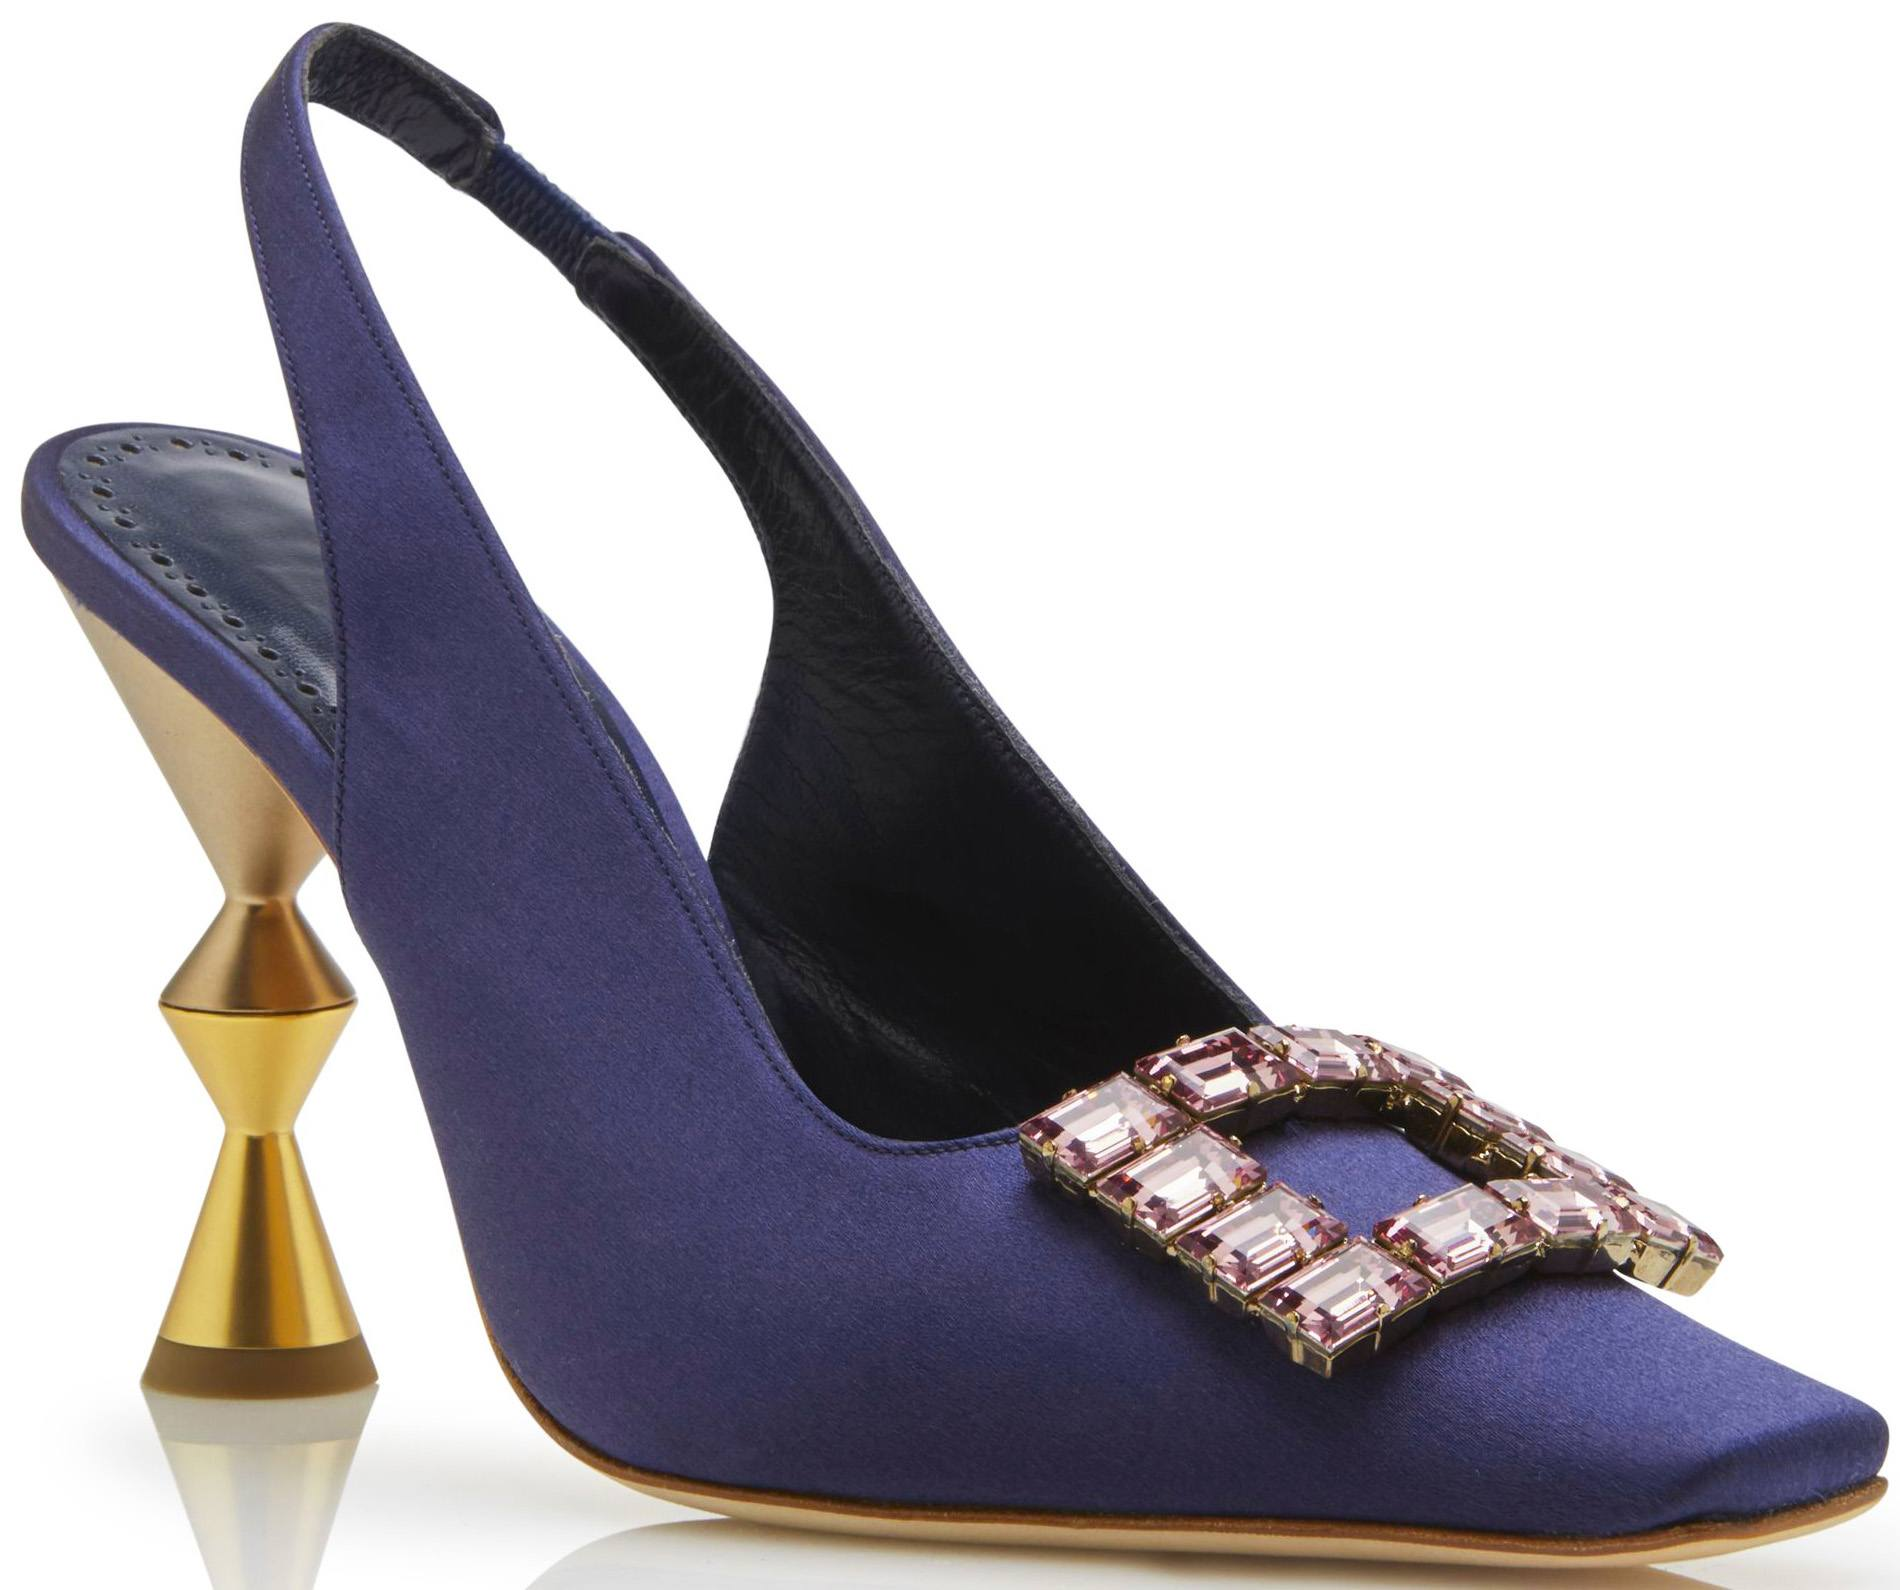 Navy Blue Satin Anazeh Slingback by Manolo Blahnik at Saks Fifth Avenue Bal Harbour